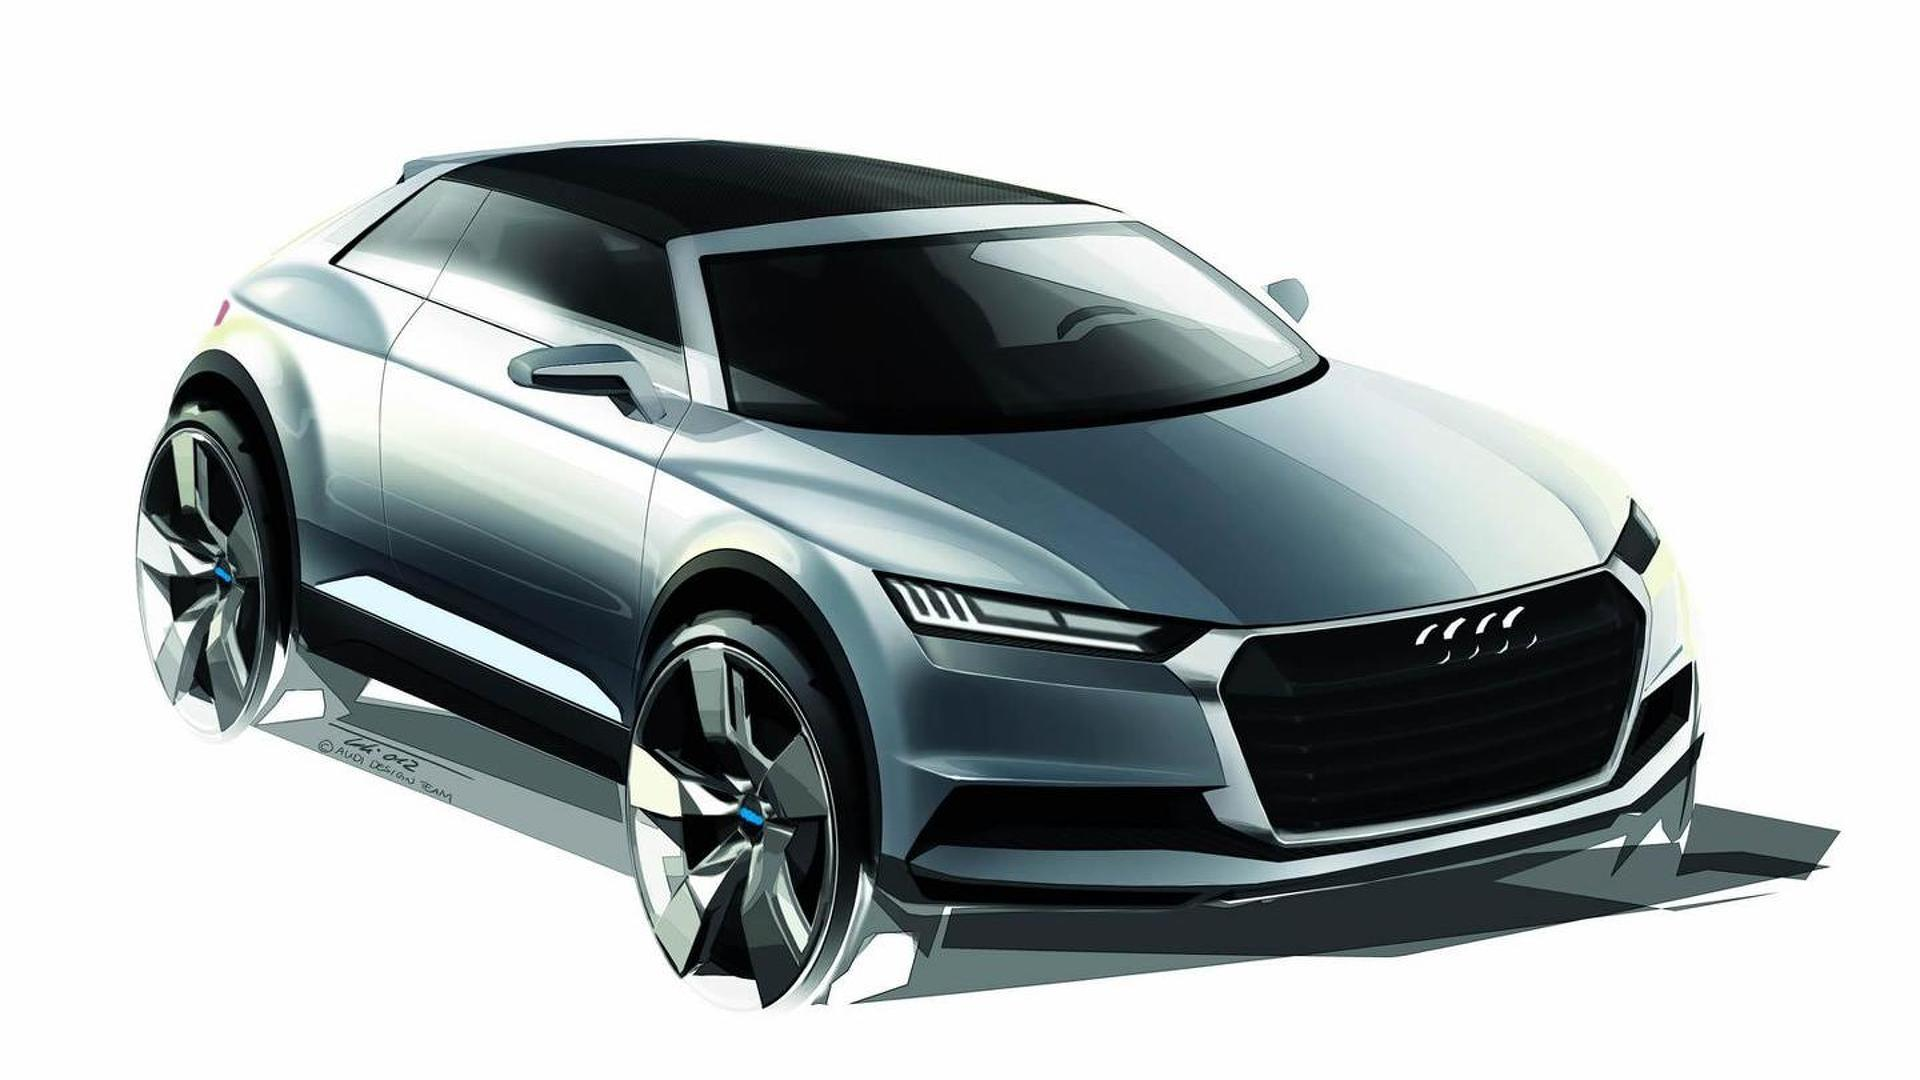 Audi reiterates plans for 60-model lineup by 2020